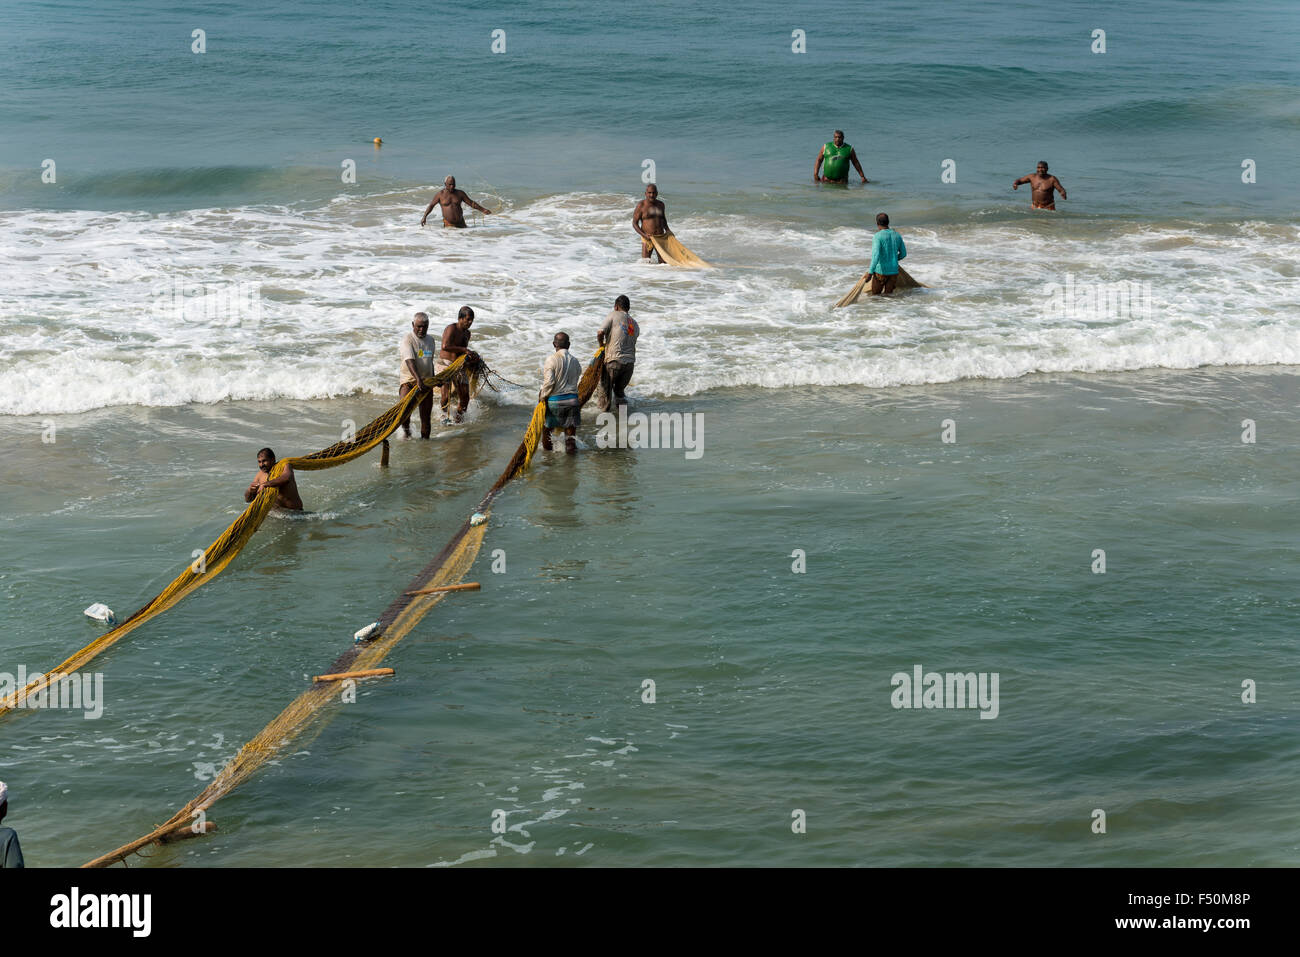 A group of fishermen, still standing in the water, is pulling out the fishing nets onto the beach - Stock Image